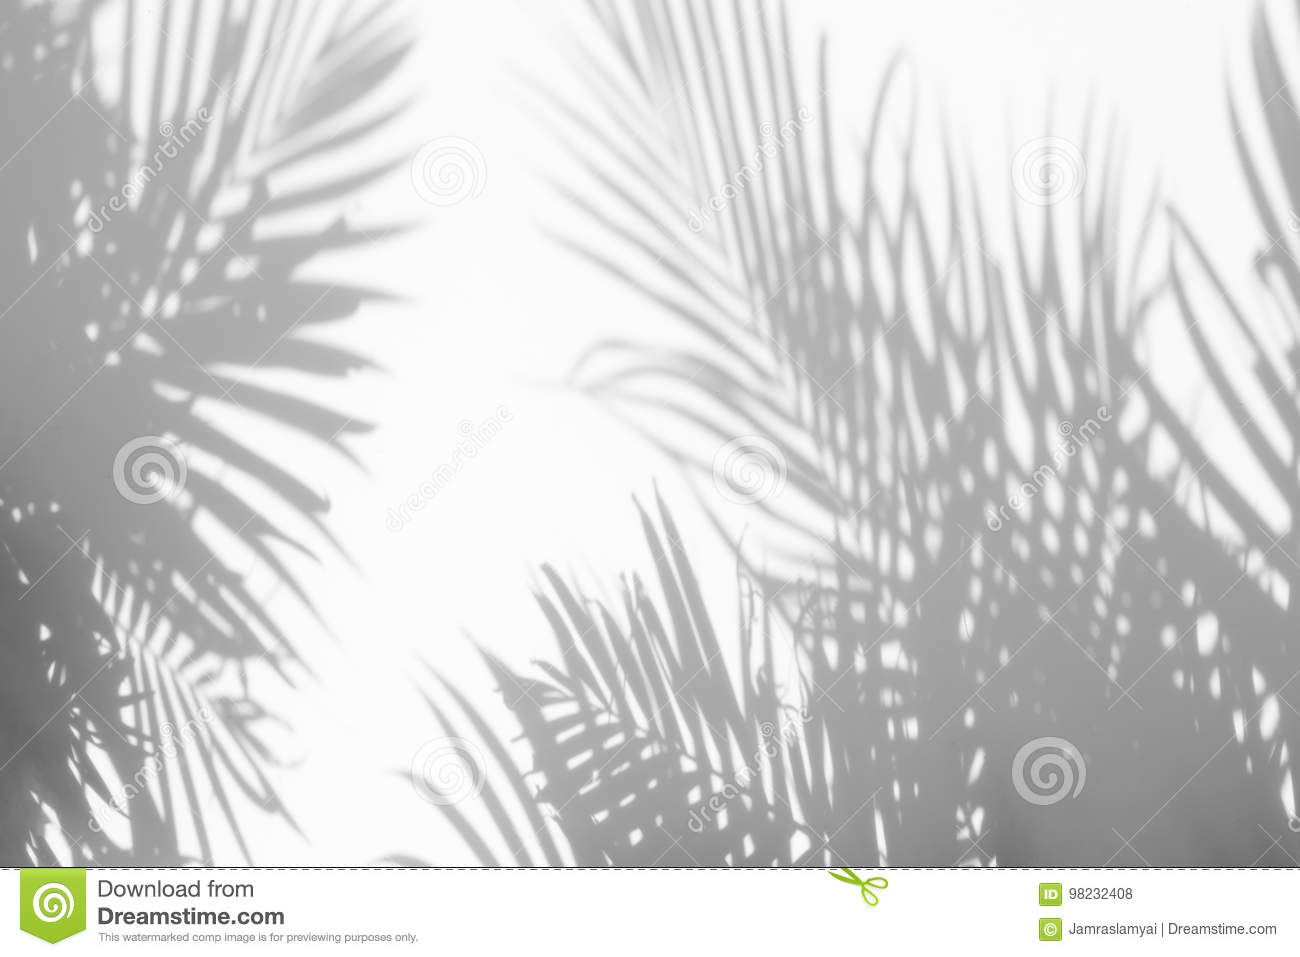 Abstract background of shadows palm leaves on a white wall.